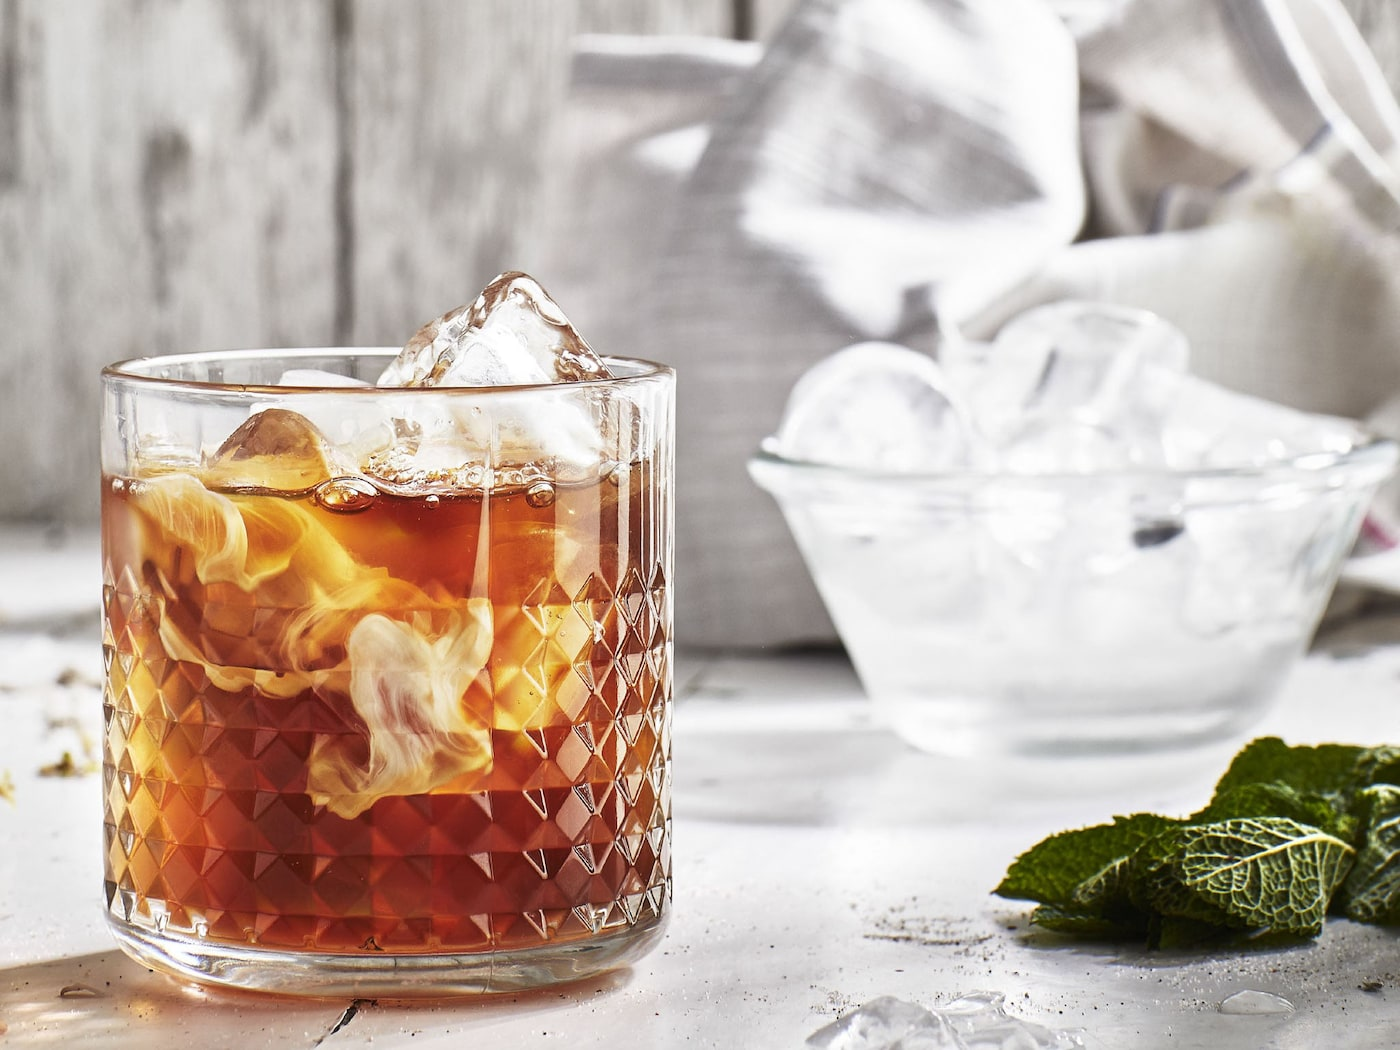 IKEA EGENTID teas can be used to make this almost dessert-like, chilled drink with peppermint and cacao flavour.